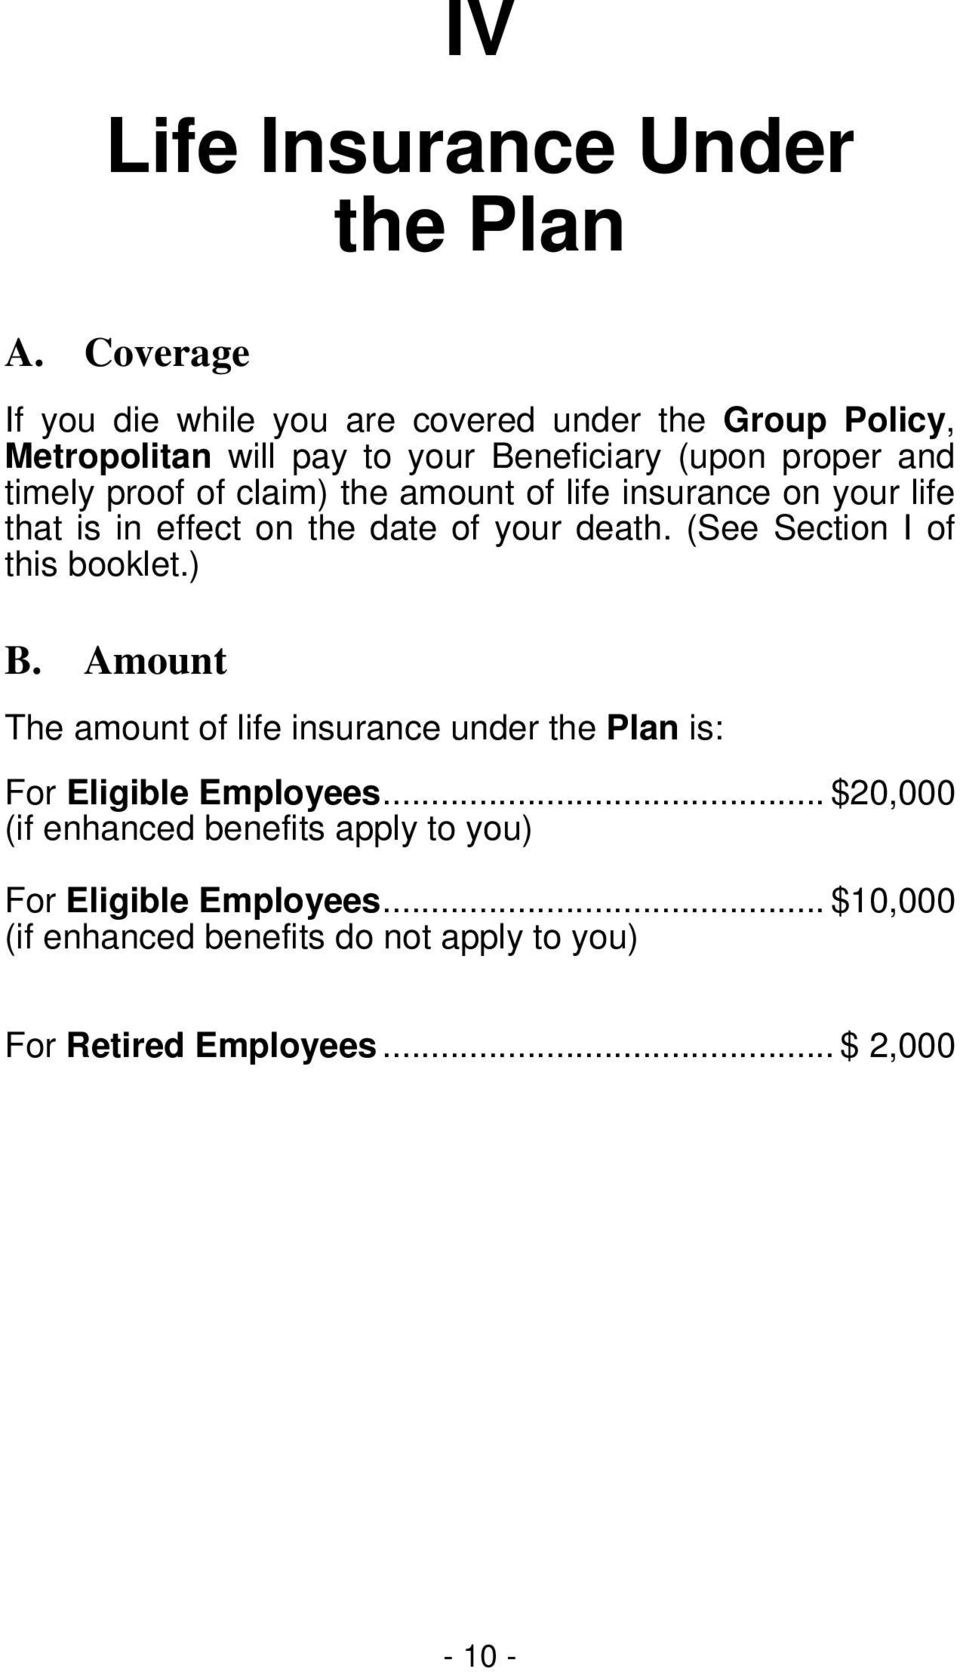 proof of claim) the amount of life insurance on your life that is in effect on the date of your death. (See Section I of this booklet.